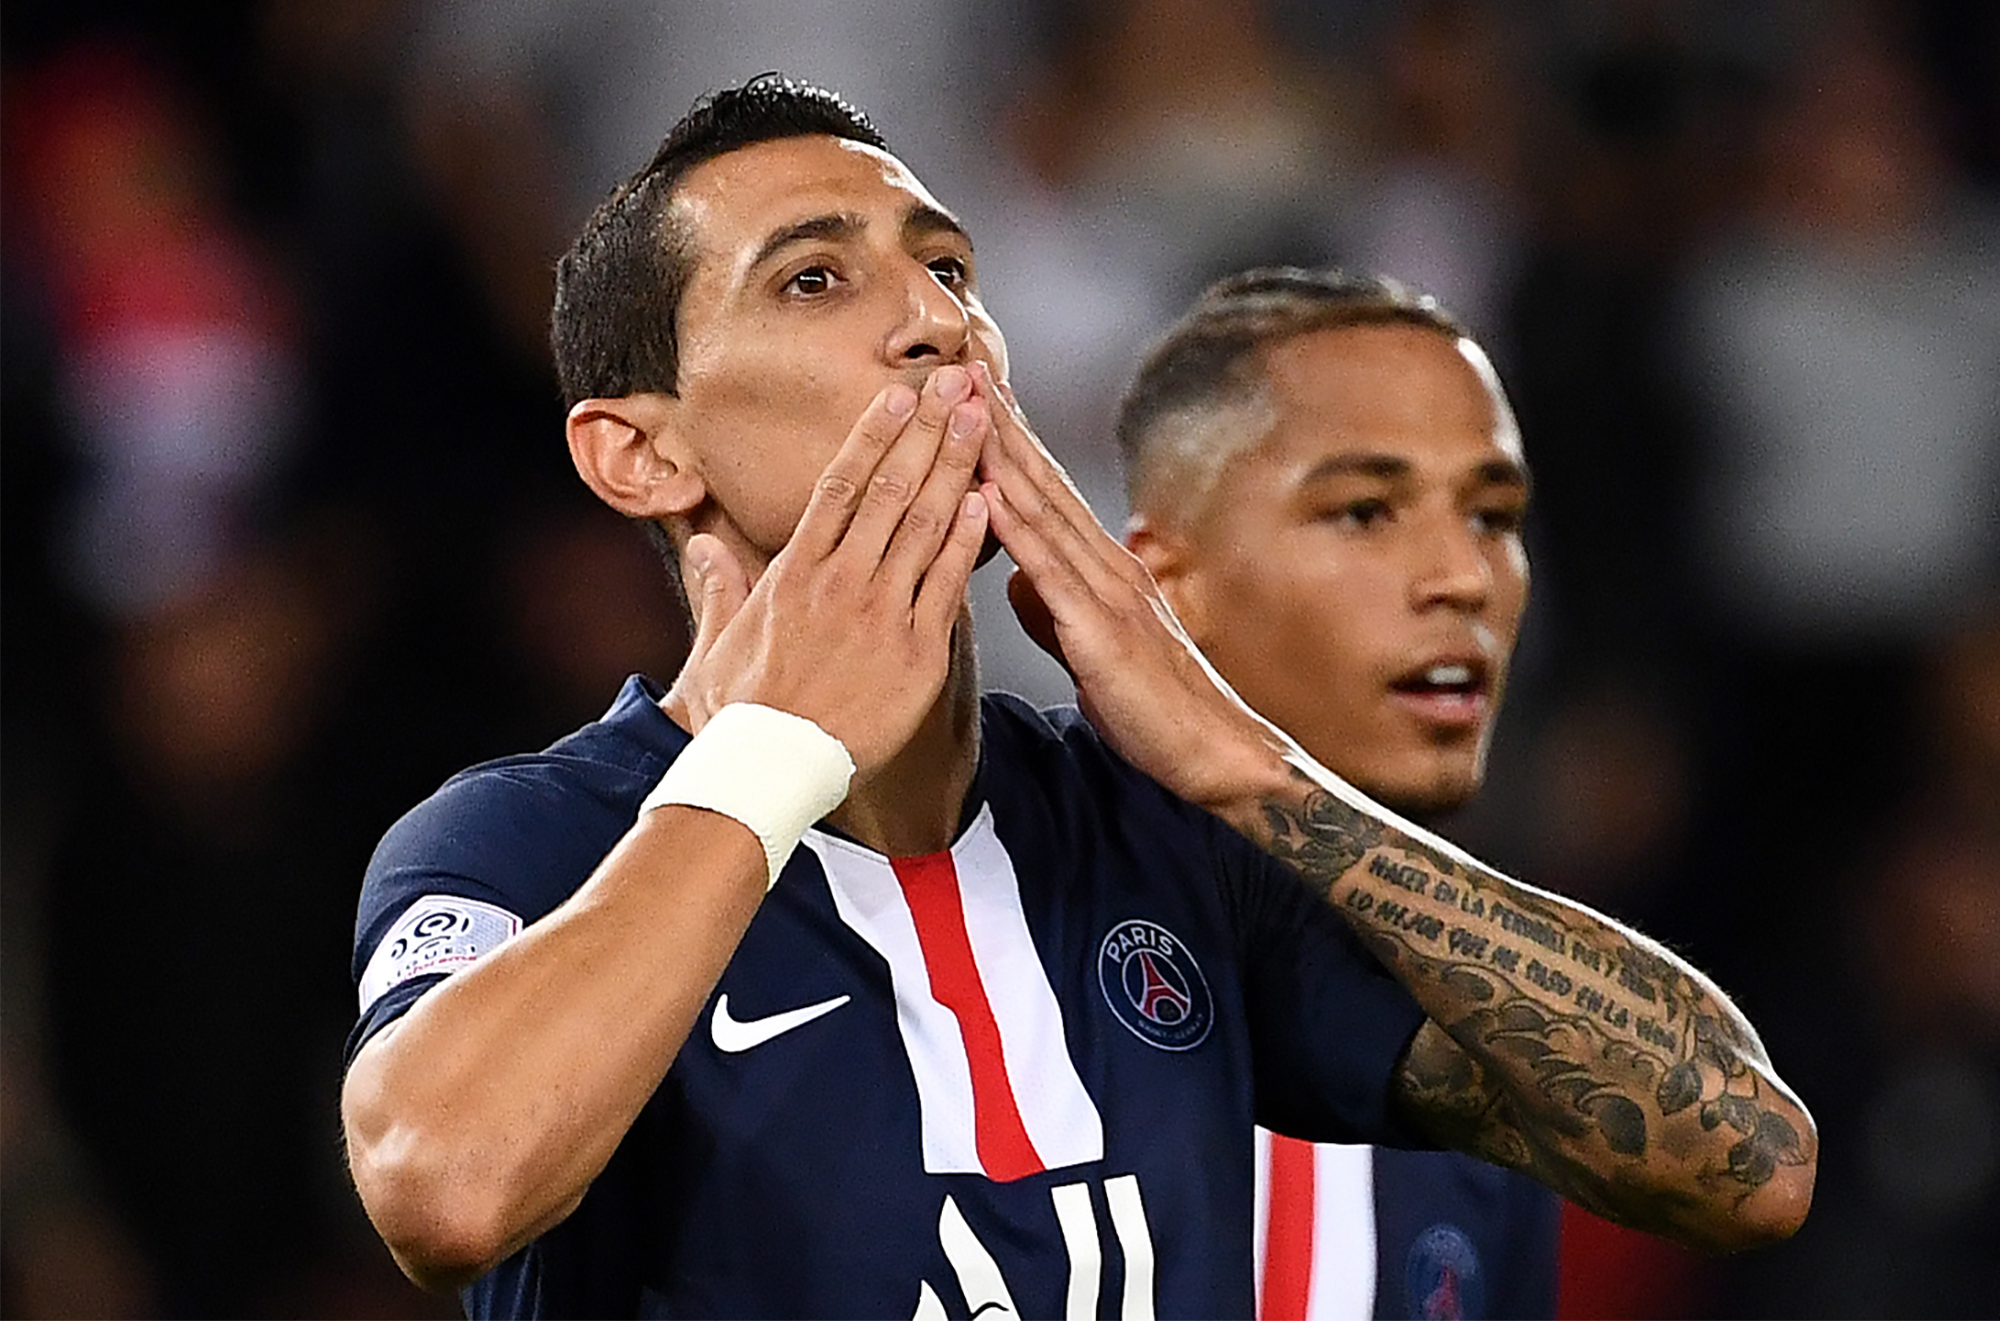 PSG will need Angel Di Maria to be at his best against Metz (Photo by FRANCK FIFE / AFP)